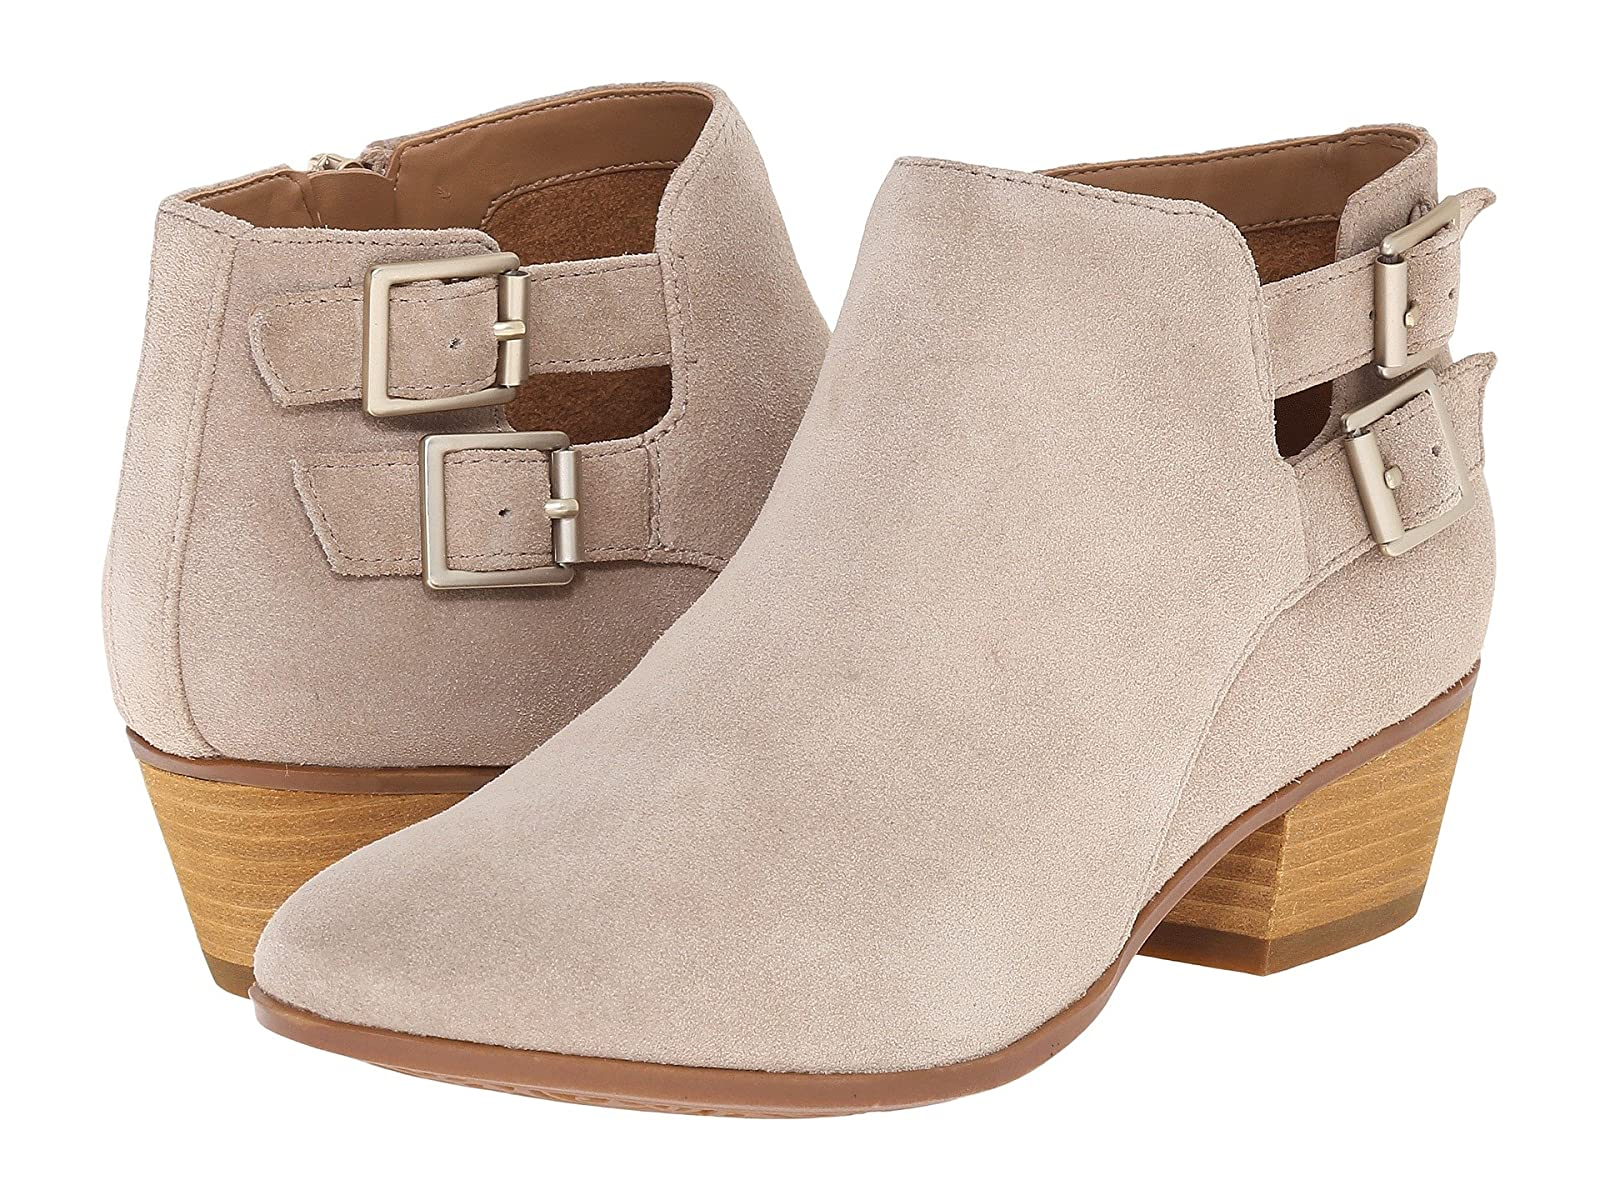 Clarks Spye AstroCheap and distinctive eye-catching shoes